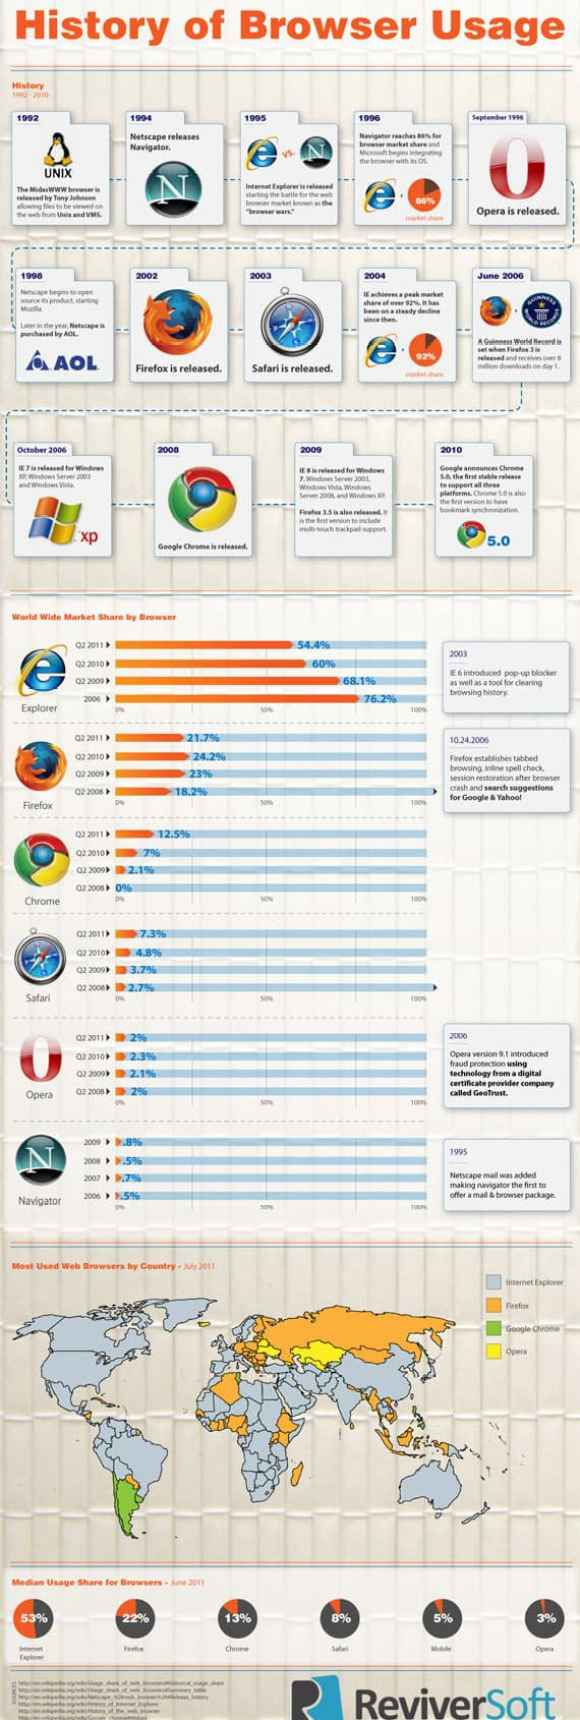 Browser wars small cleaned Browser Wars : How did it evolve? [INFOGRAPHIC]